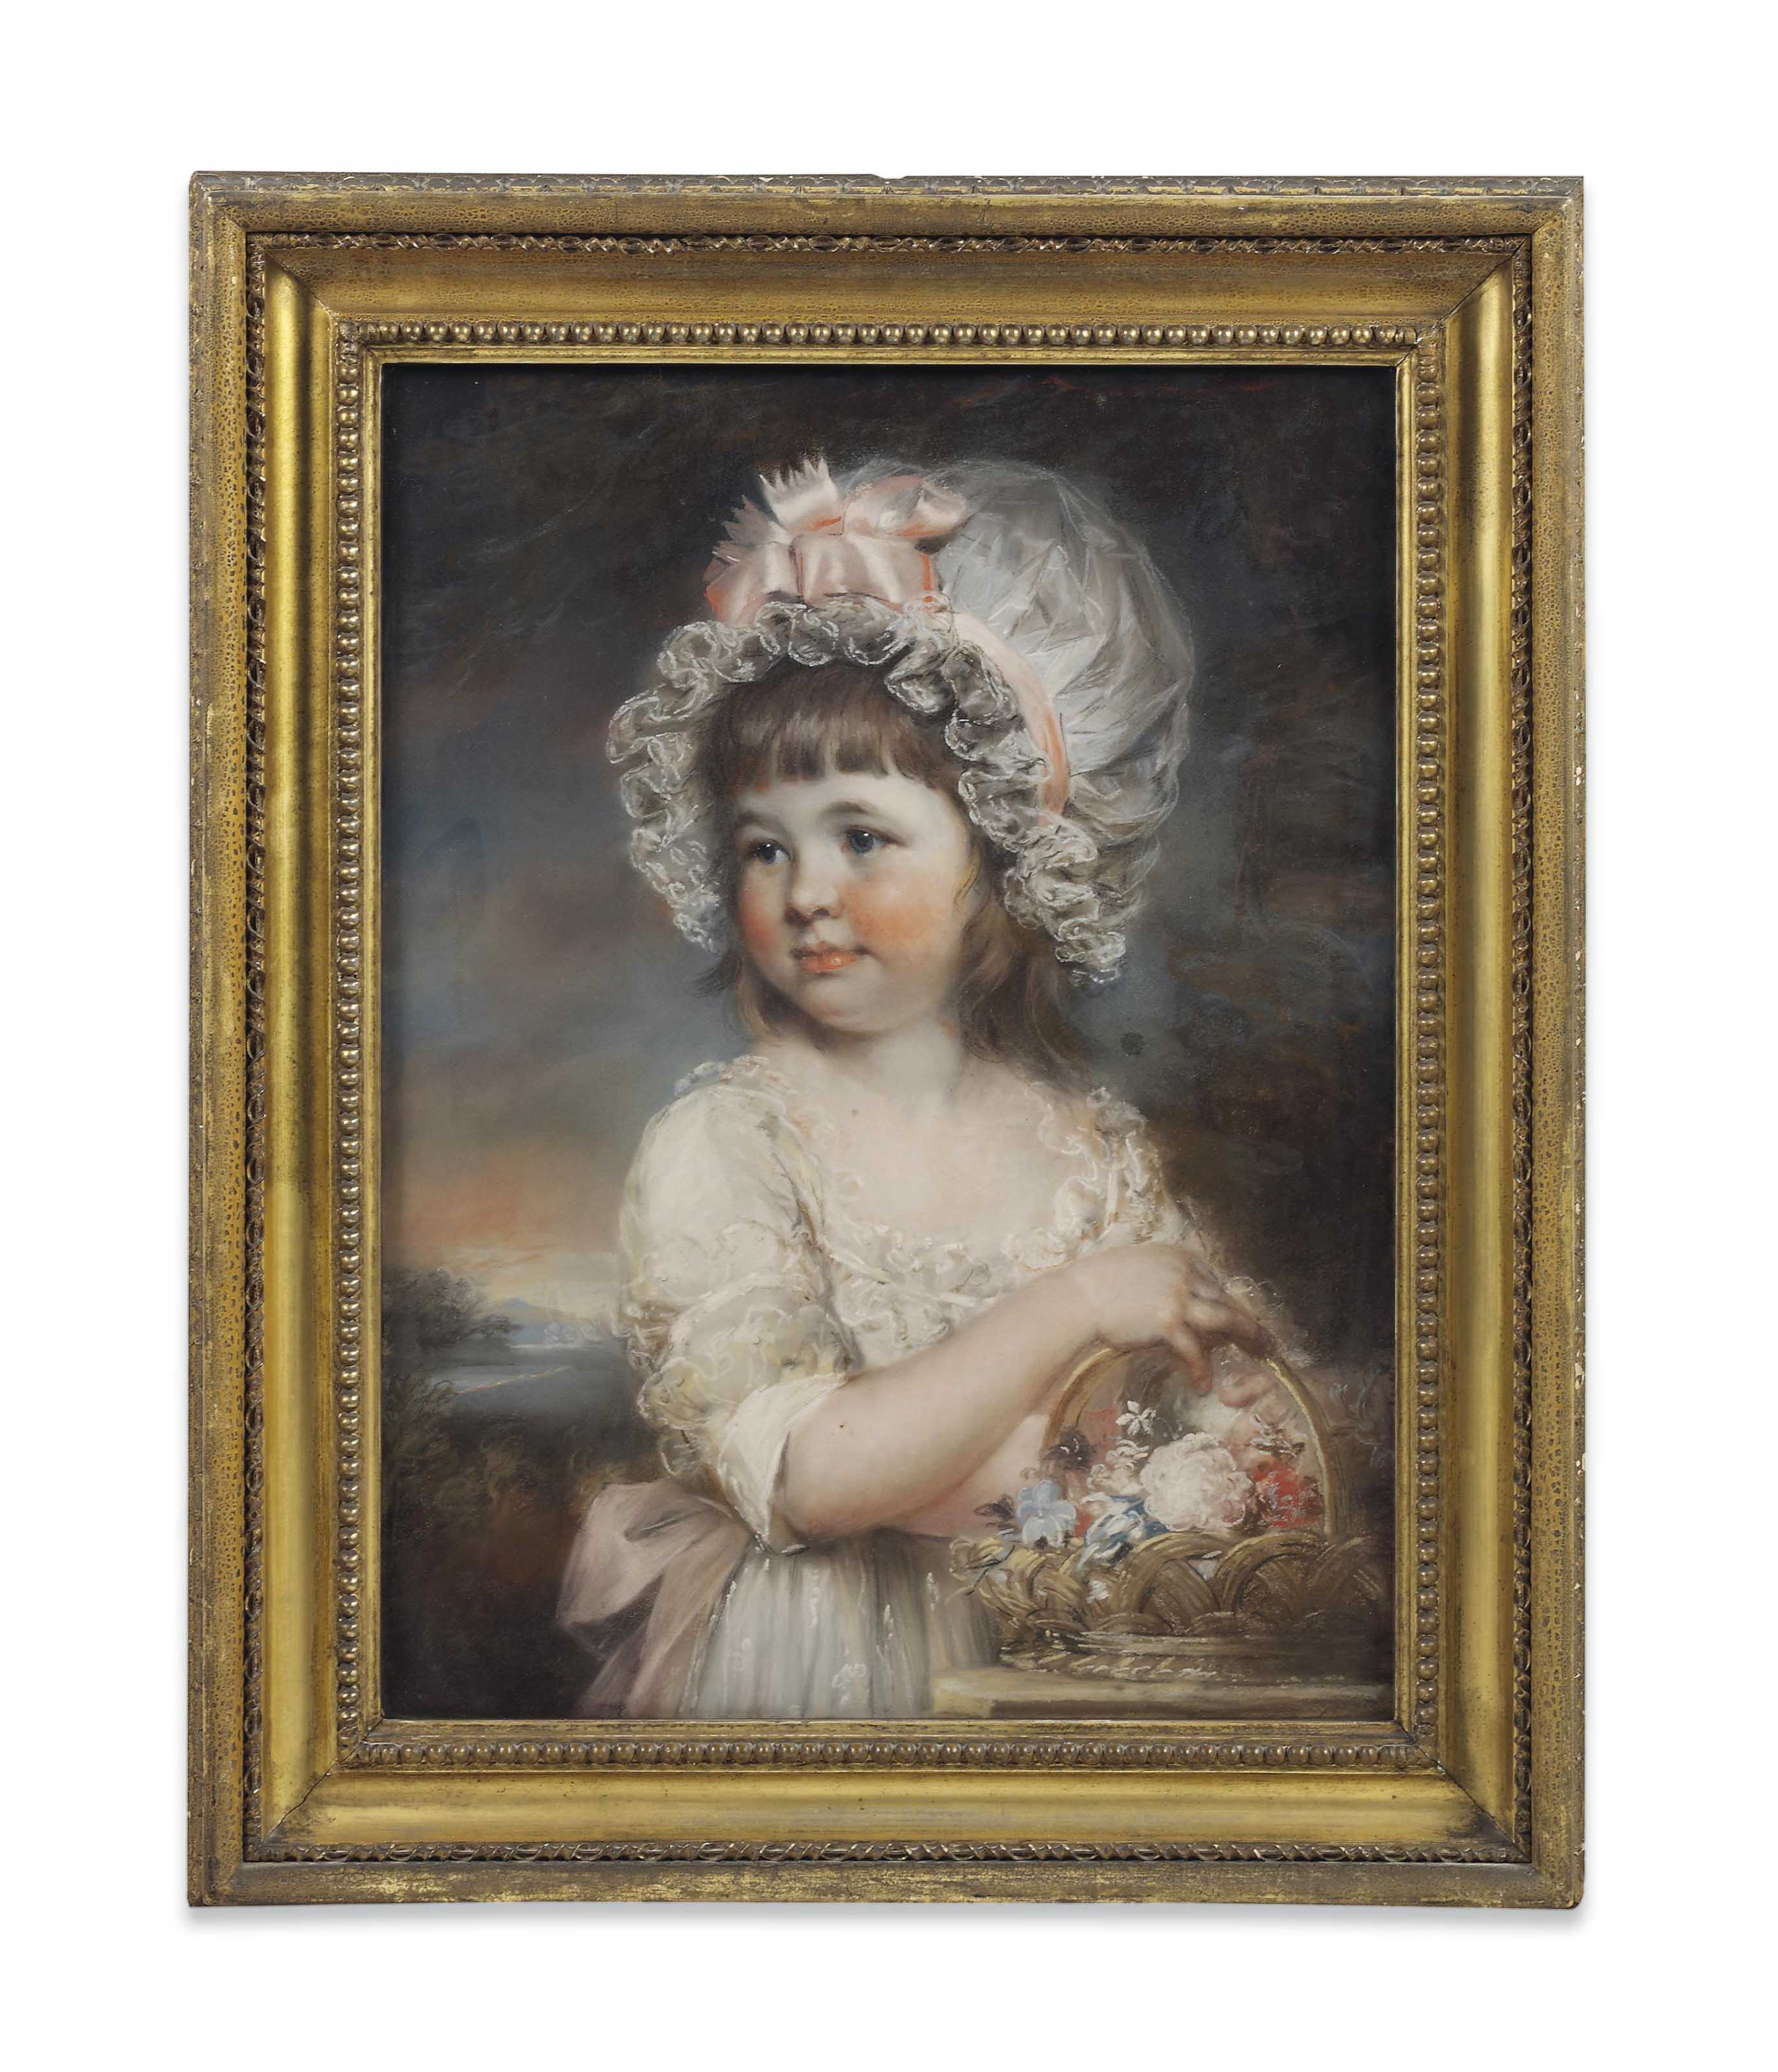 Portrait of Lady Henrietta Elizabeth Cavendish, younger daughter of William, fifth Duke of Devonshire, aged five